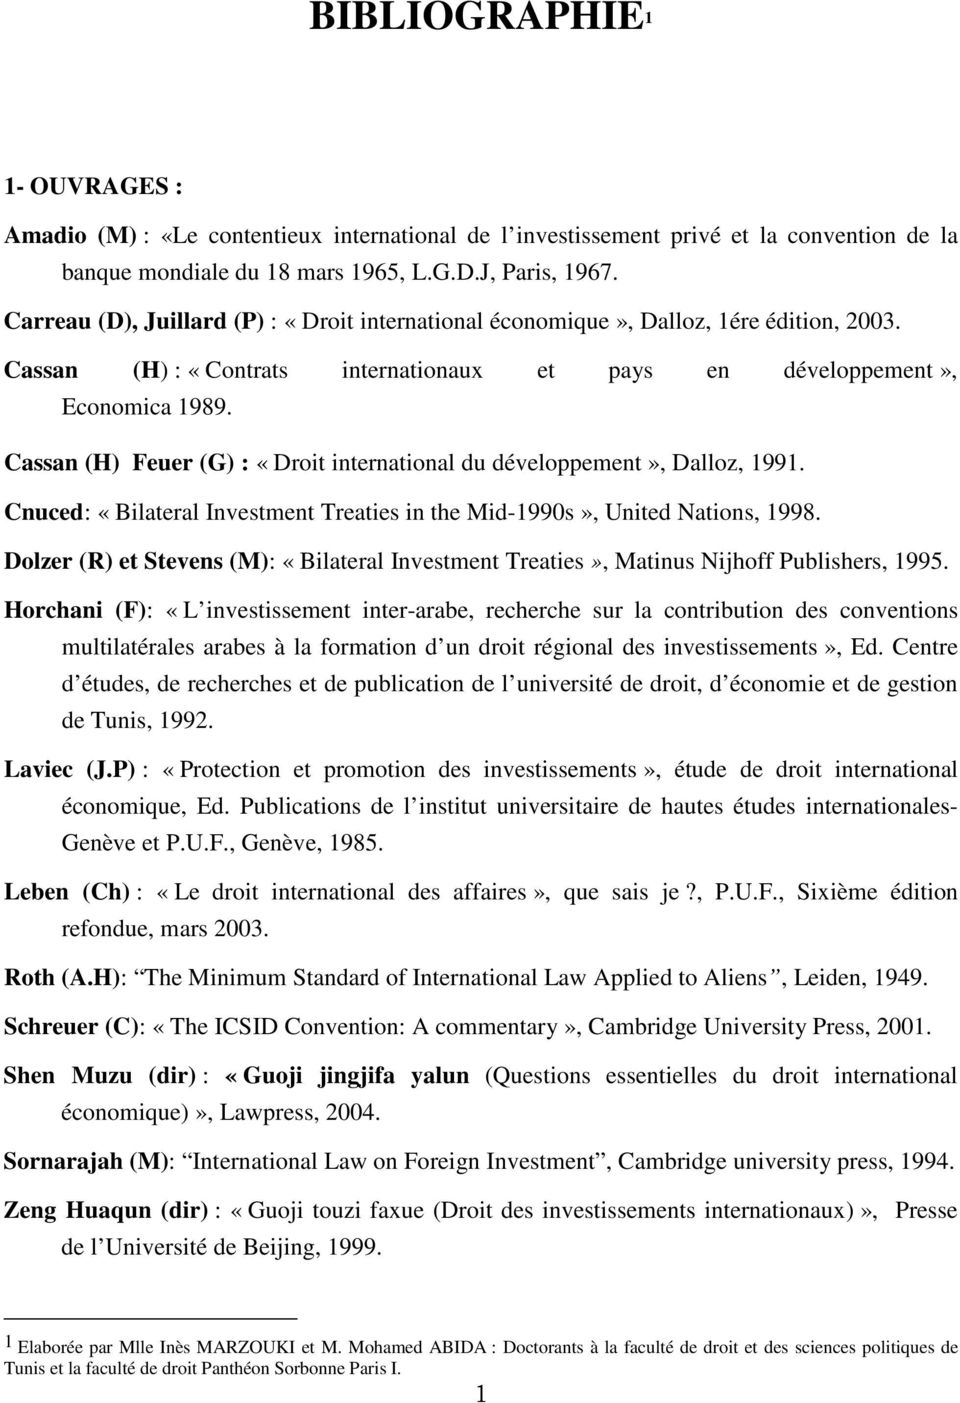 Cassan (H) Feuer (G) : «Droit international du développement», Dalloz, 1991. Cnuced: «Bilateral Investment Treaties in the Mid-1990s», United Nations, 1998.